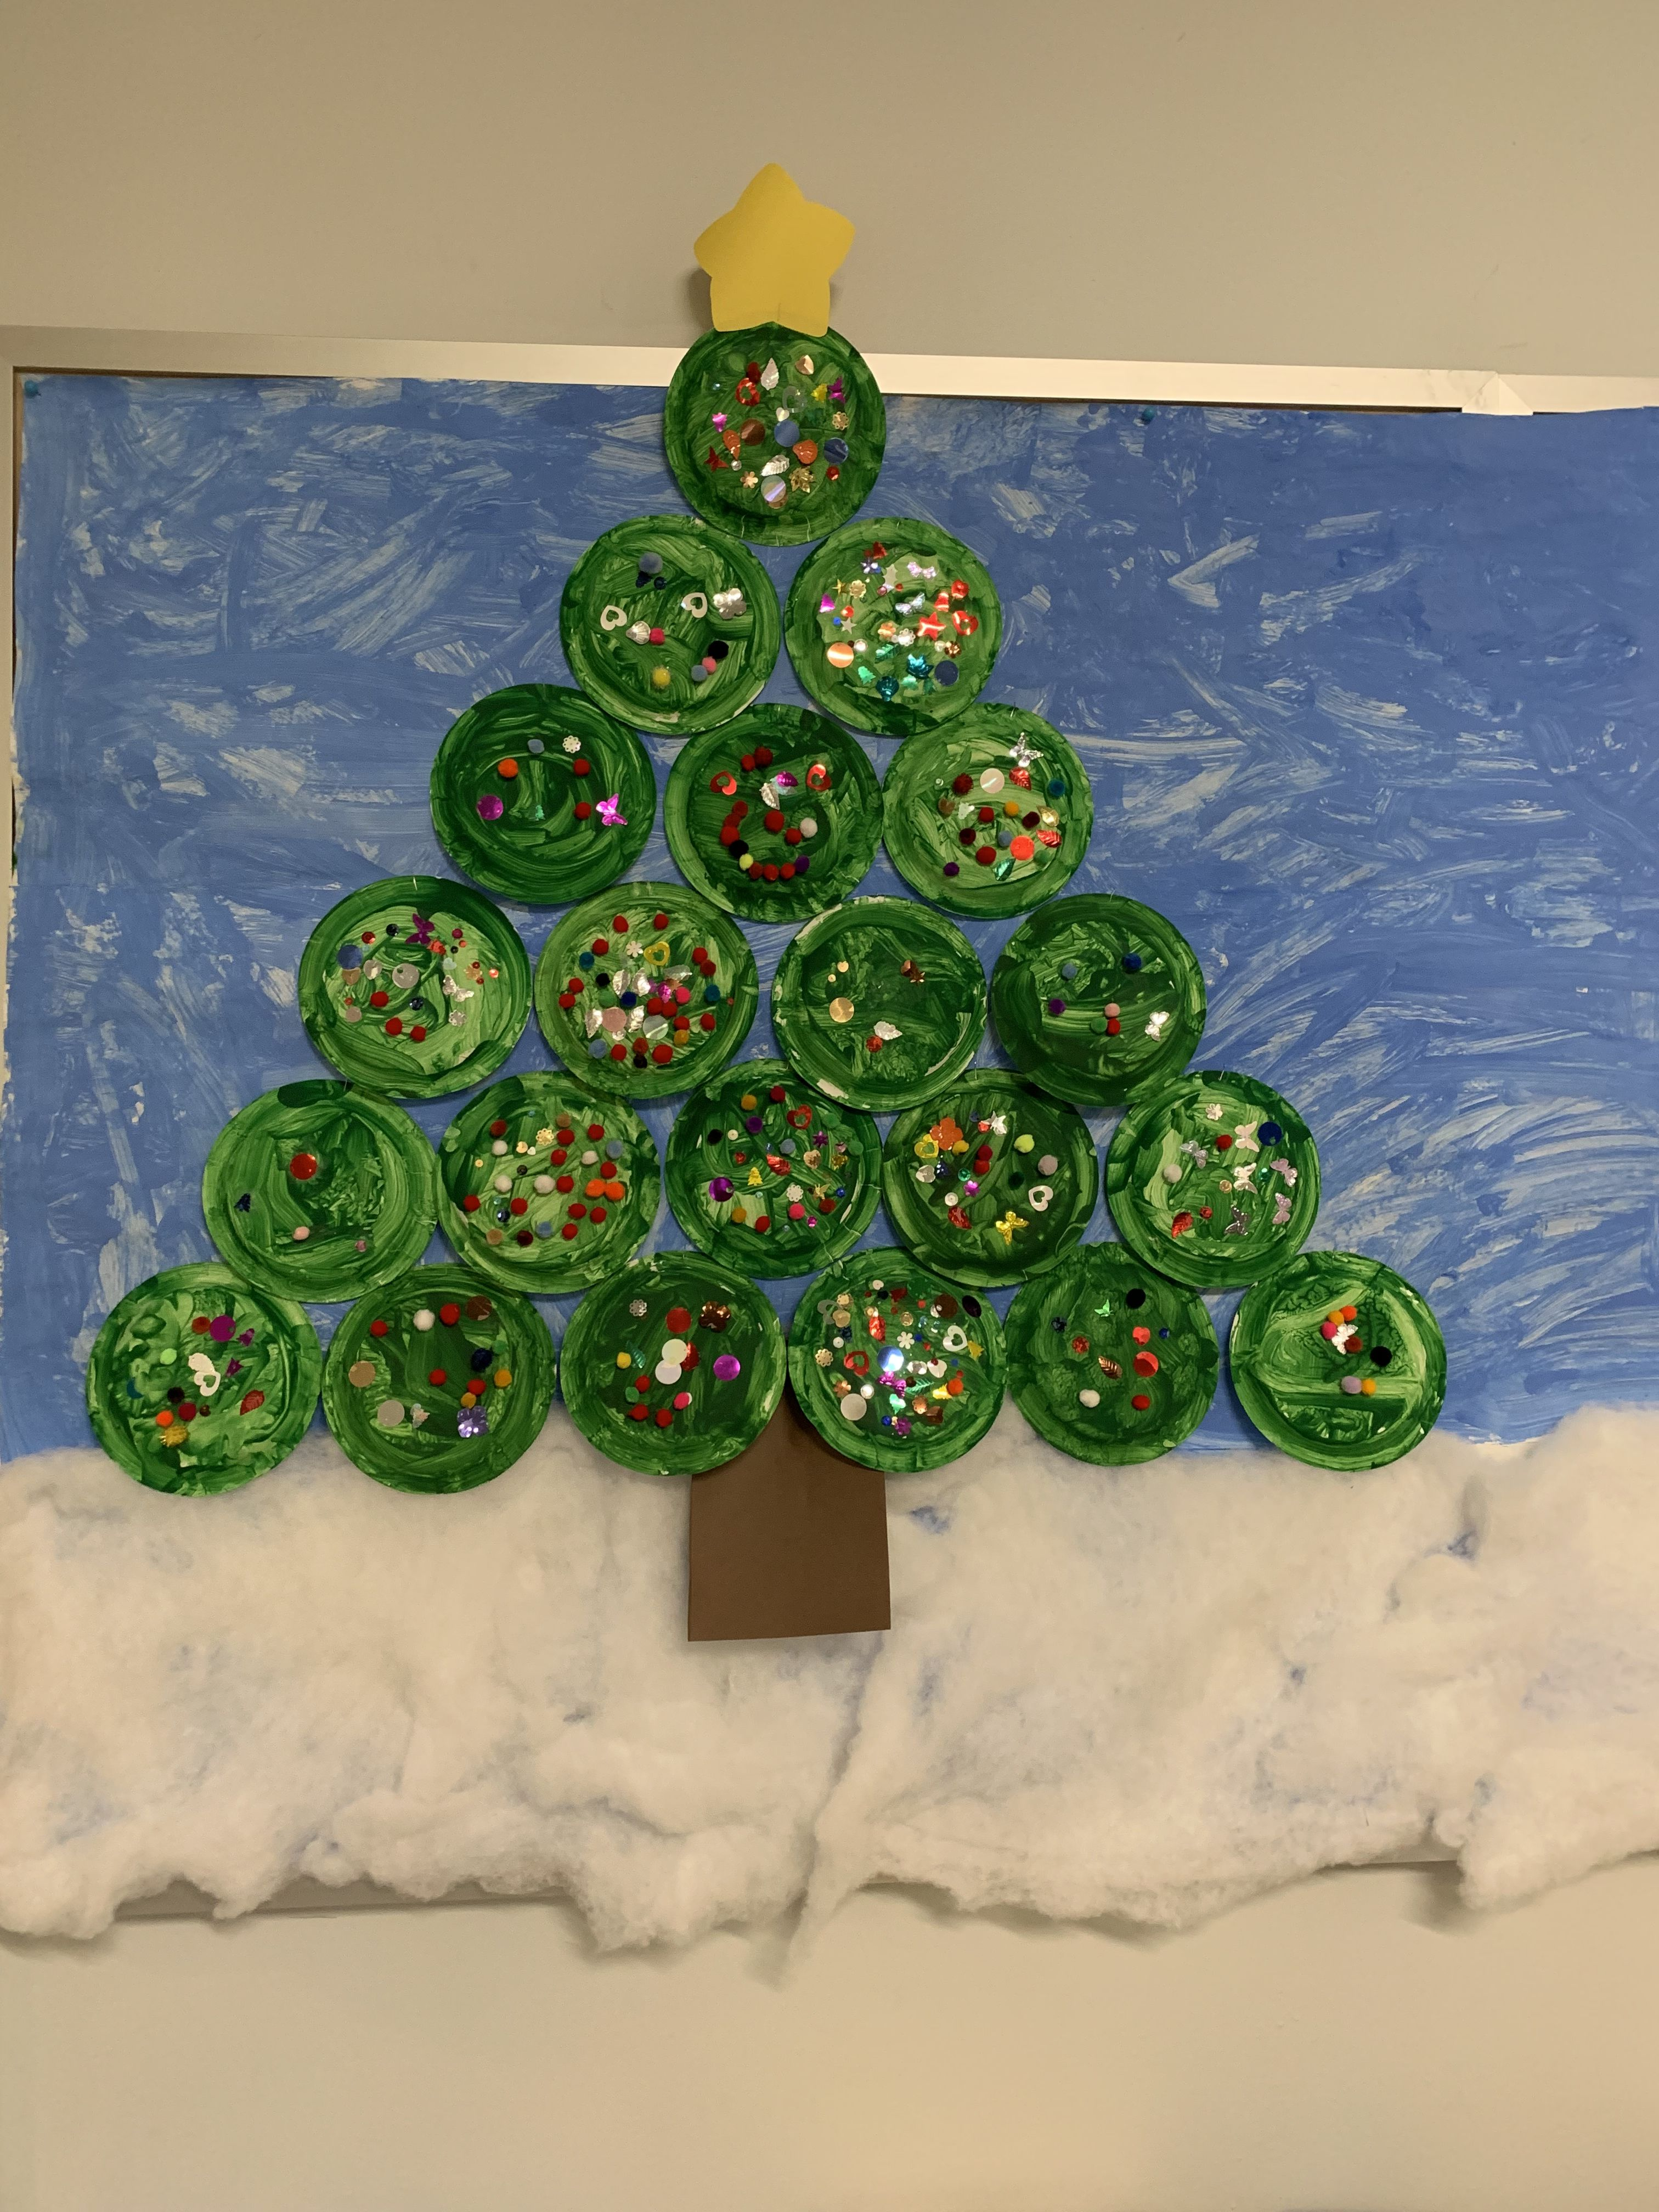 Class Christmas Tree Made From Paper Plates With Images Christmas Bulbs Christmas Ornaments Holiday Decor